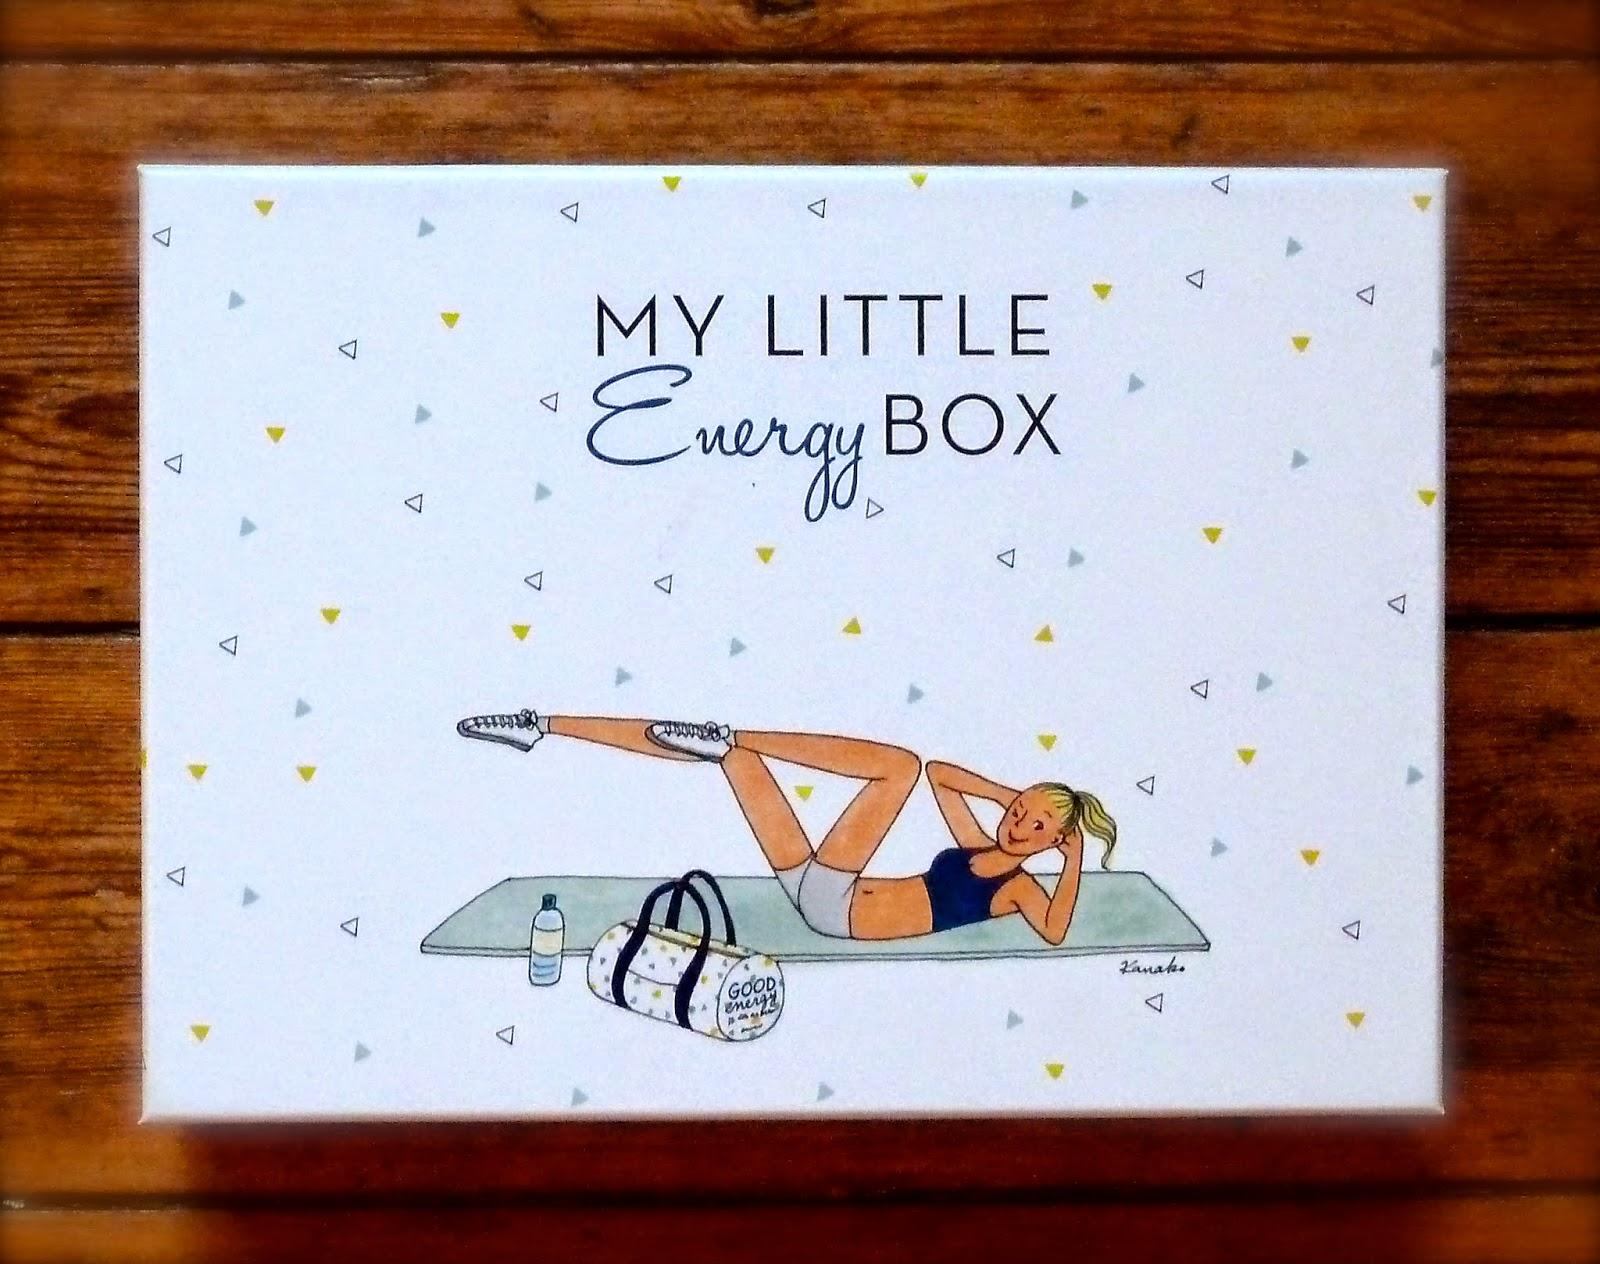 My Little Energy Box - Janvier 2015